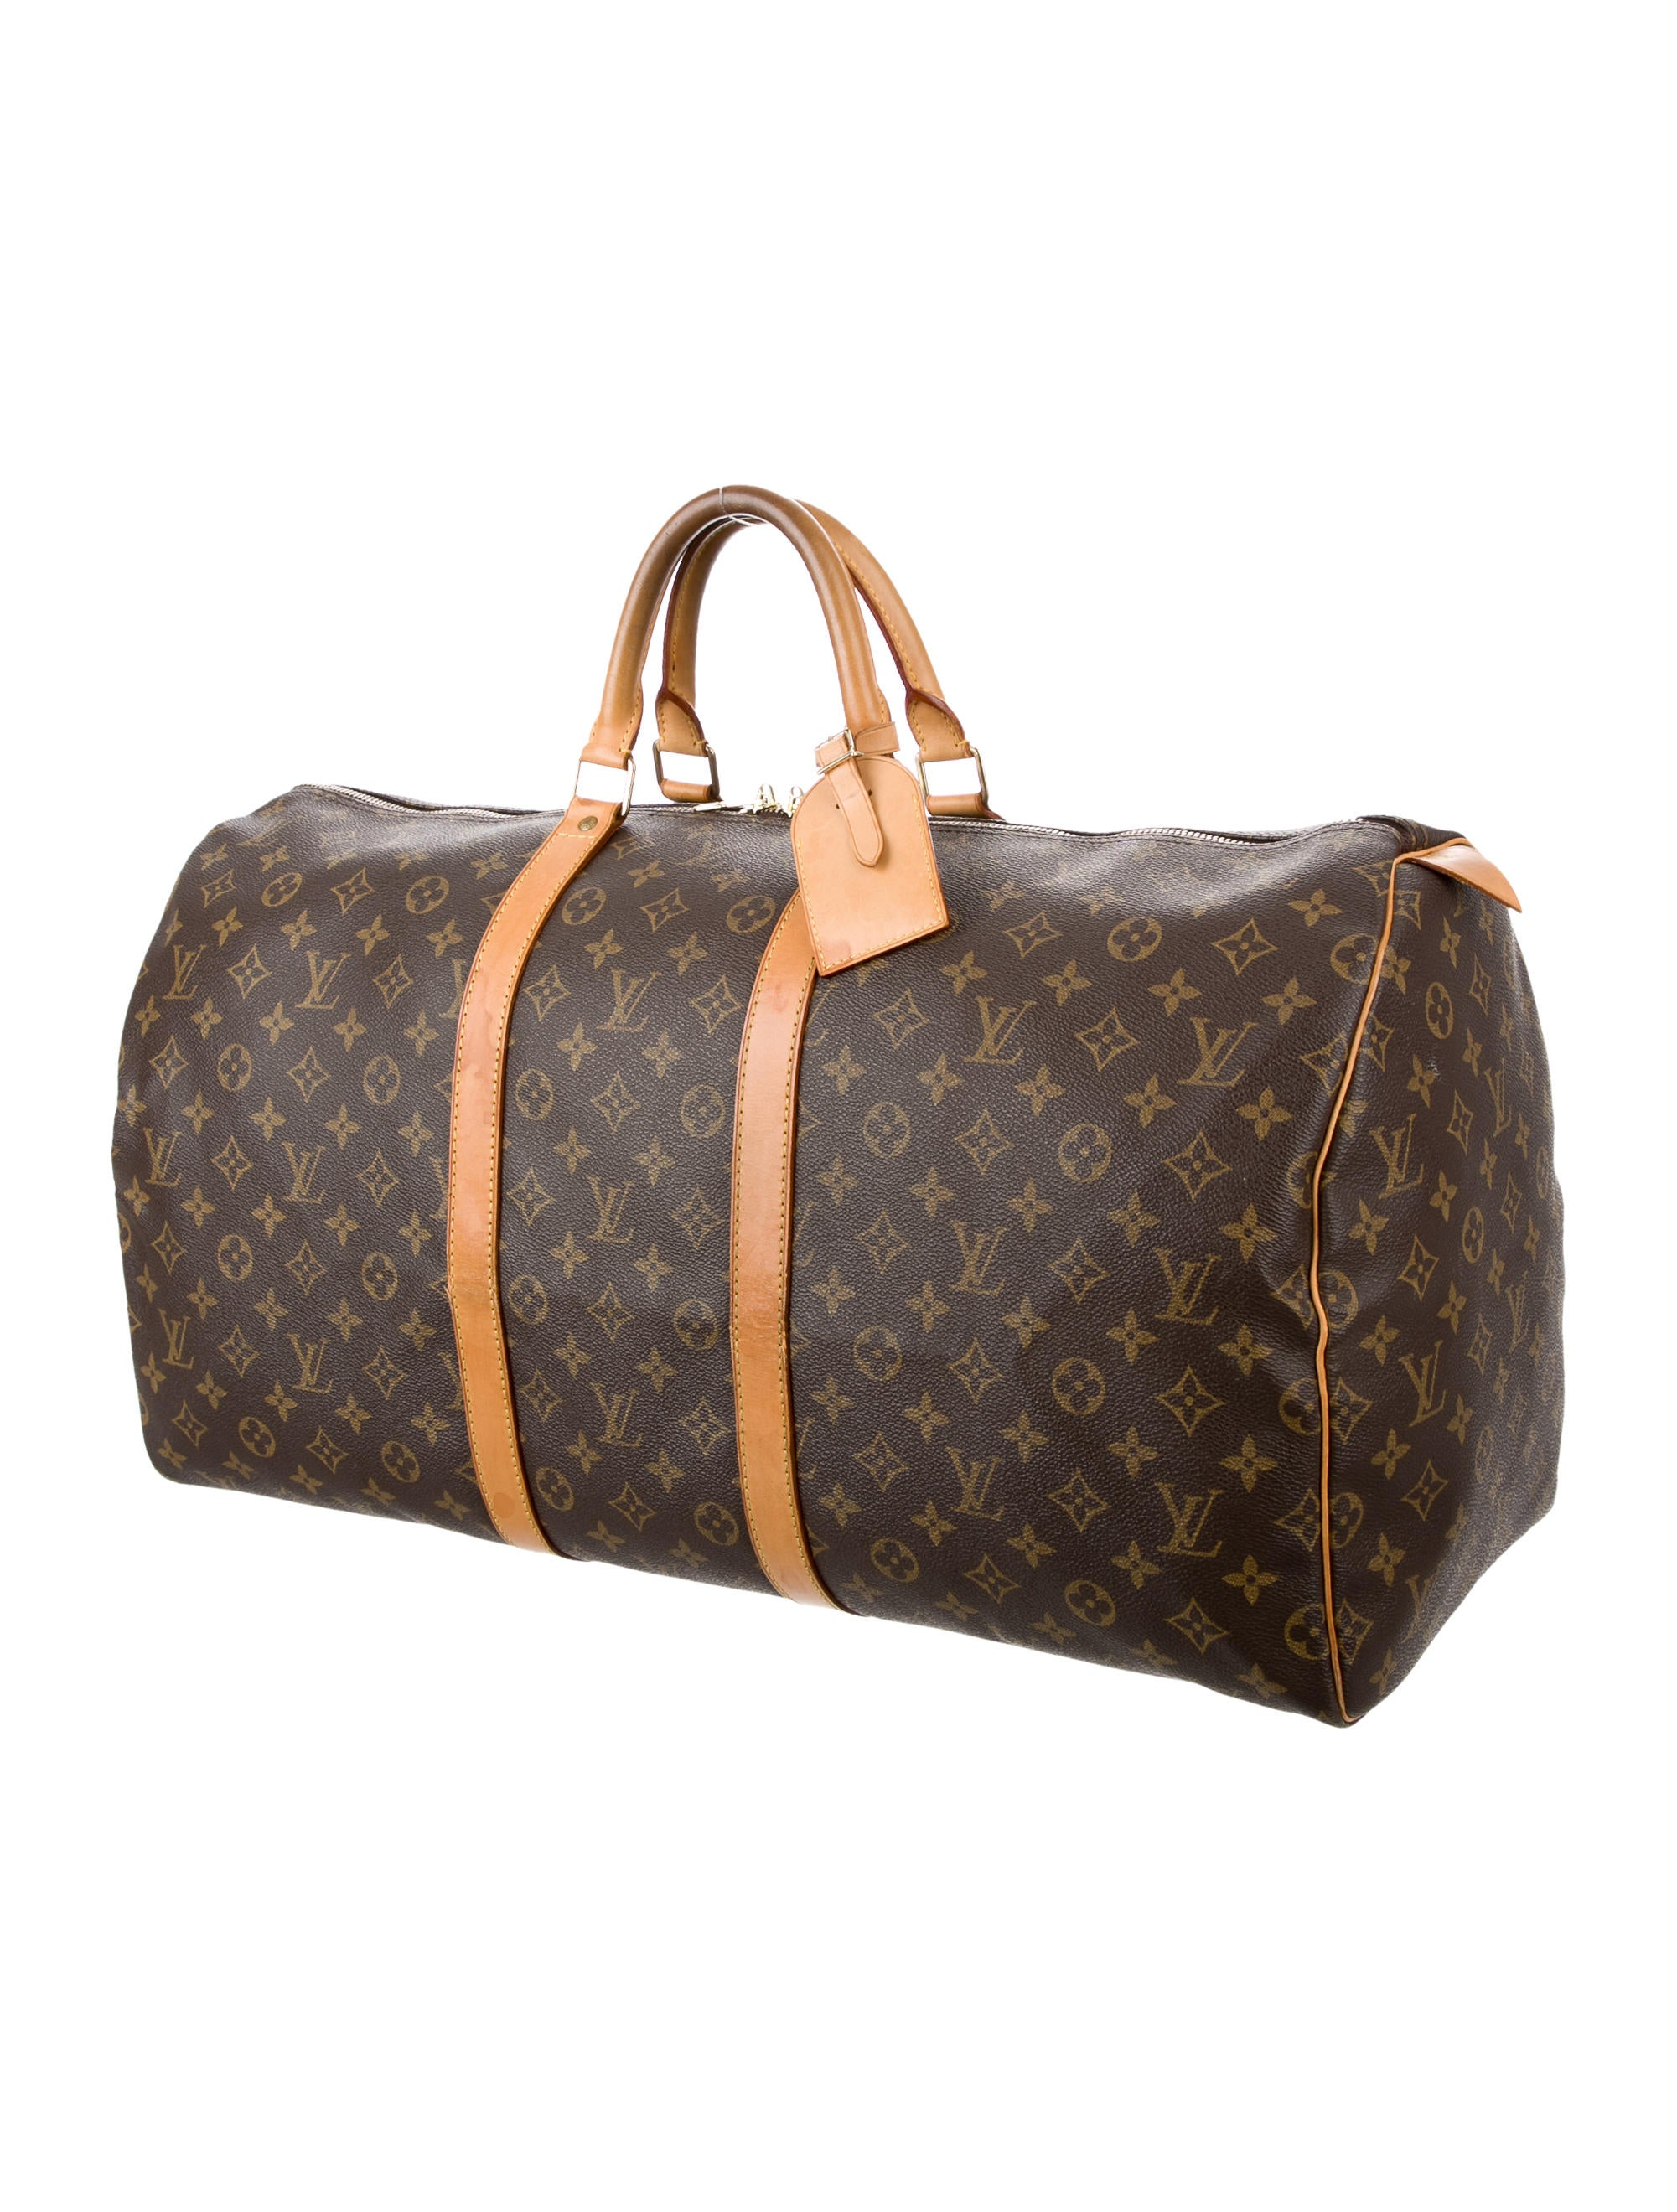 louis vuitton monogram keepall 55 bags lou121577 the realreal. Black Bedroom Furniture Sets. Home Design Ideas